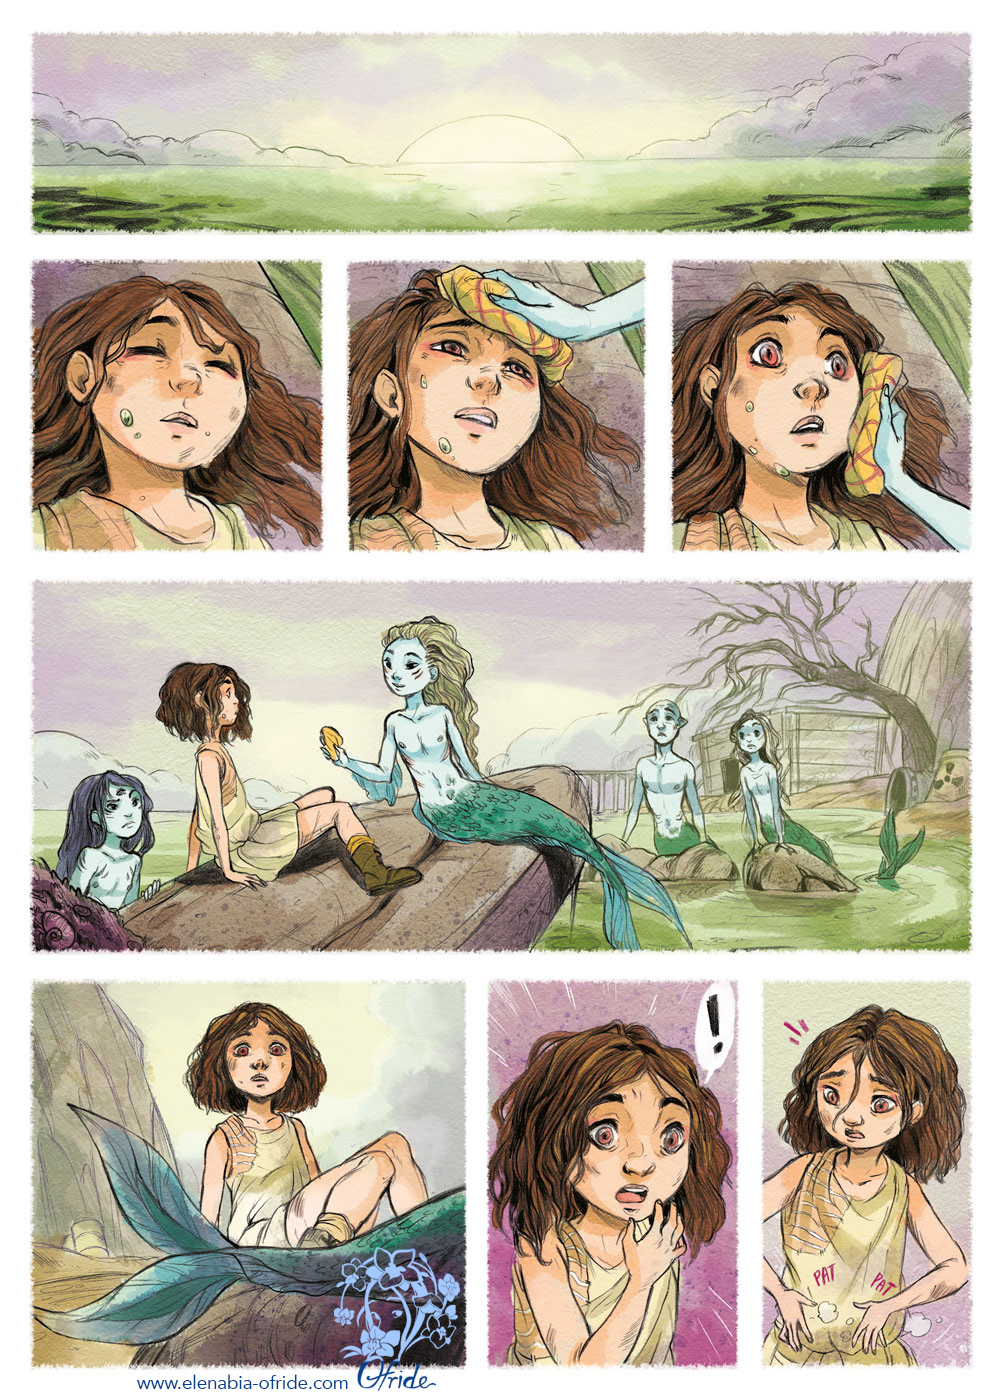 lewe comic page the child saved by the mermaids